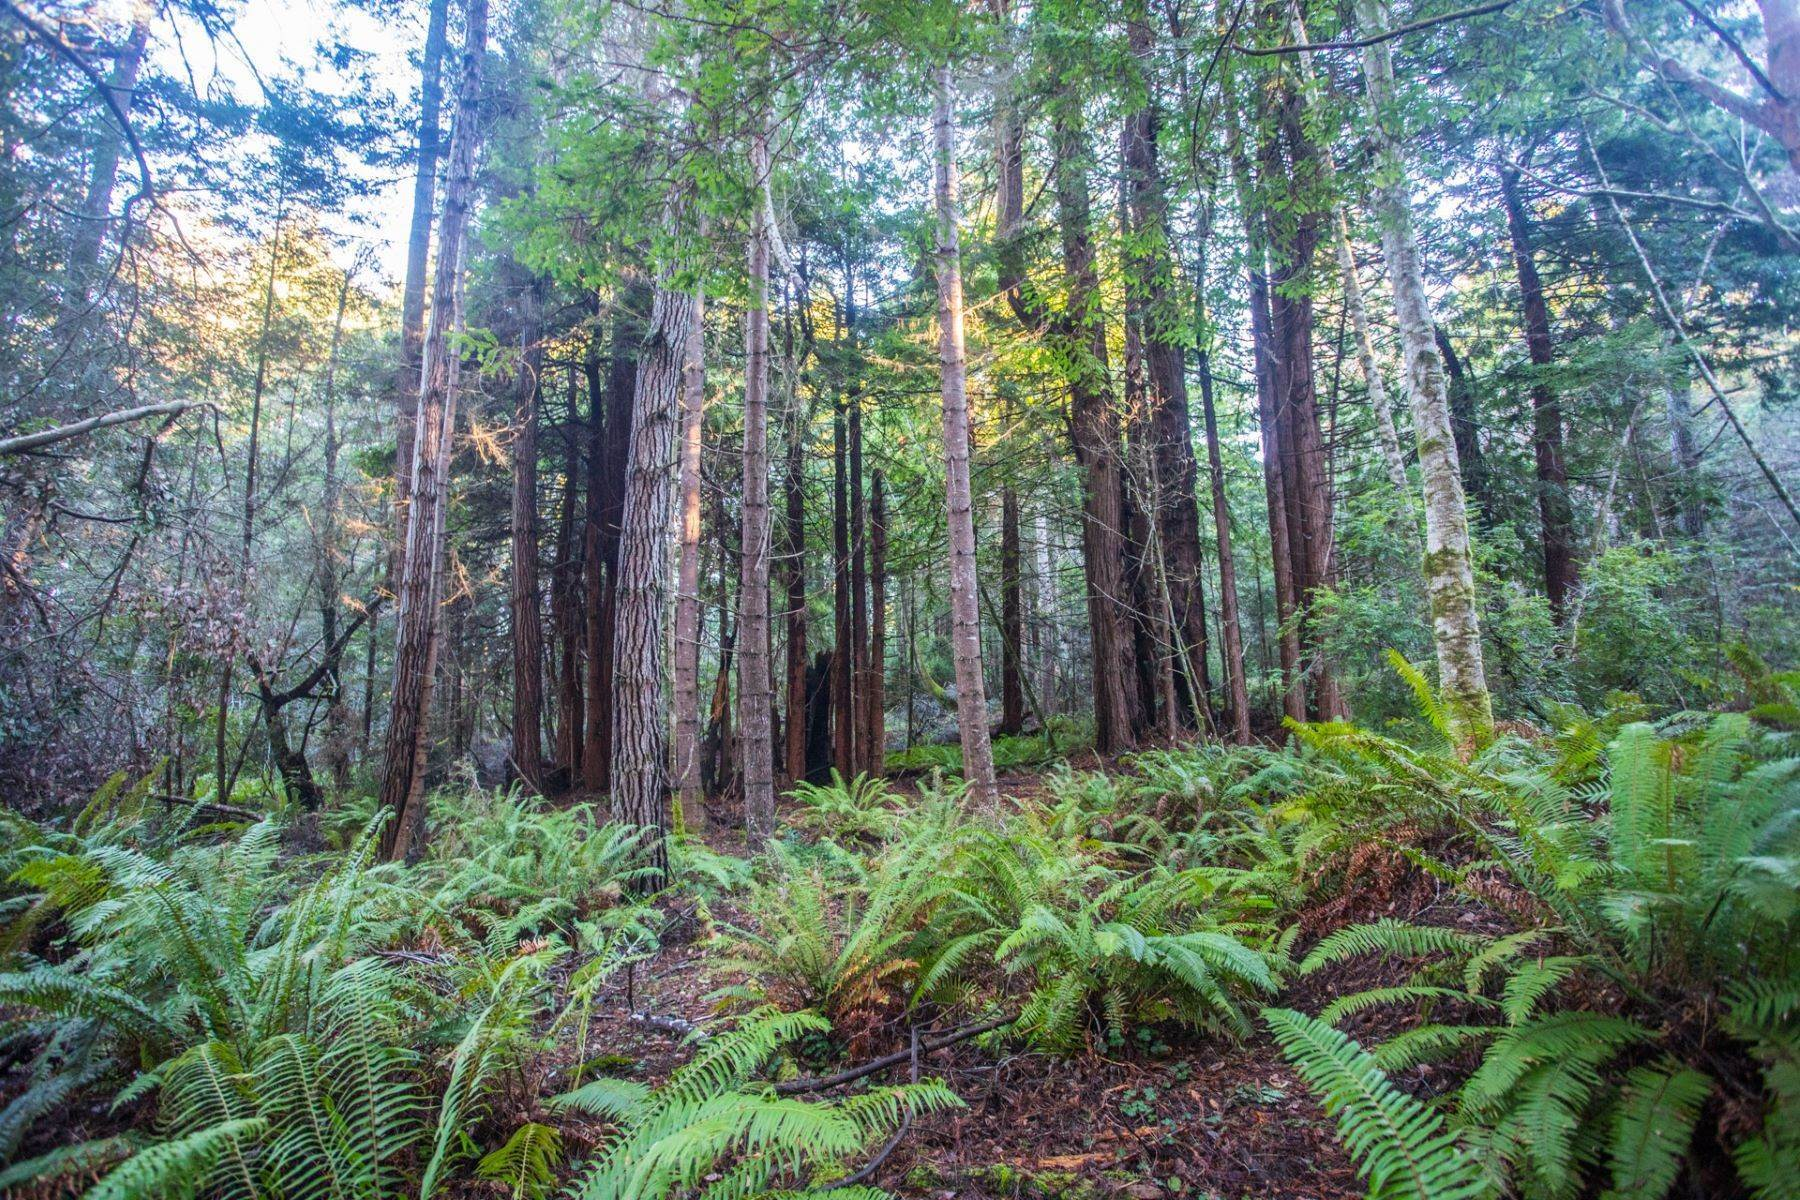 Land for Sale at Inglenook Oasis 26573 N Highway 1 Fort Bragg, California 95437 United States